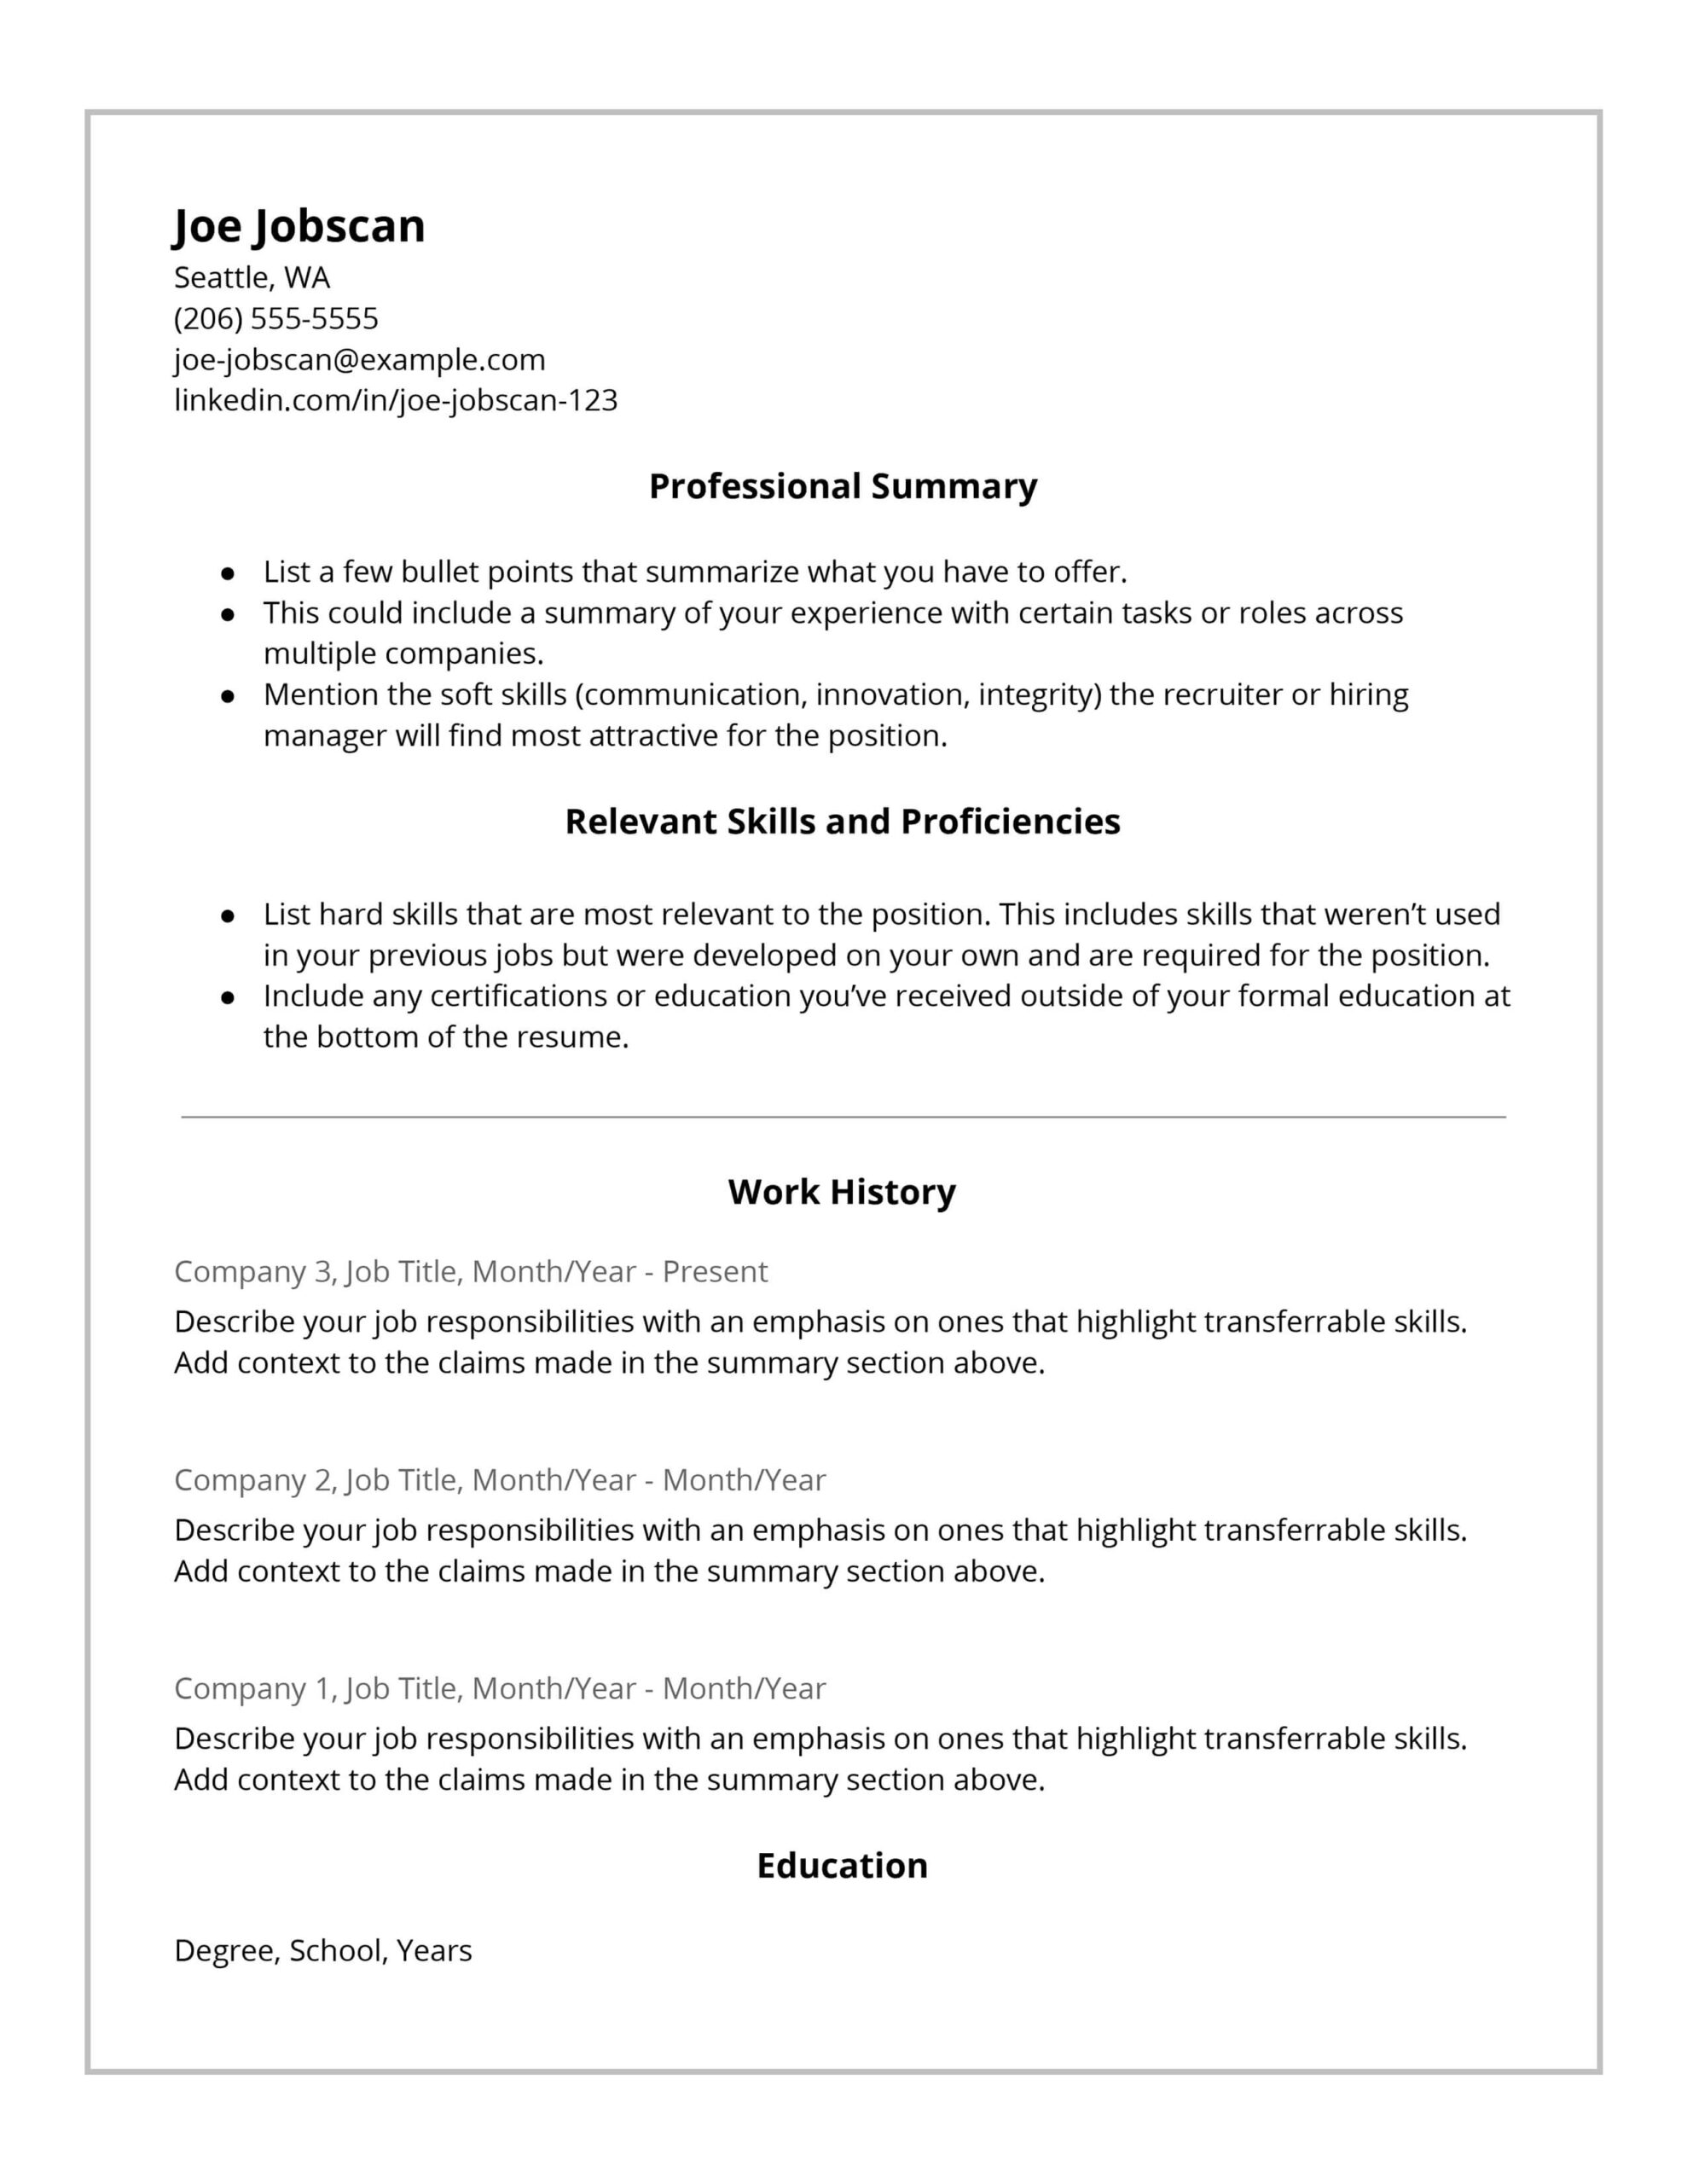 recruiters hate the functional resume format here highlight skills on hybrid template Resume Highlight Skills On Resume